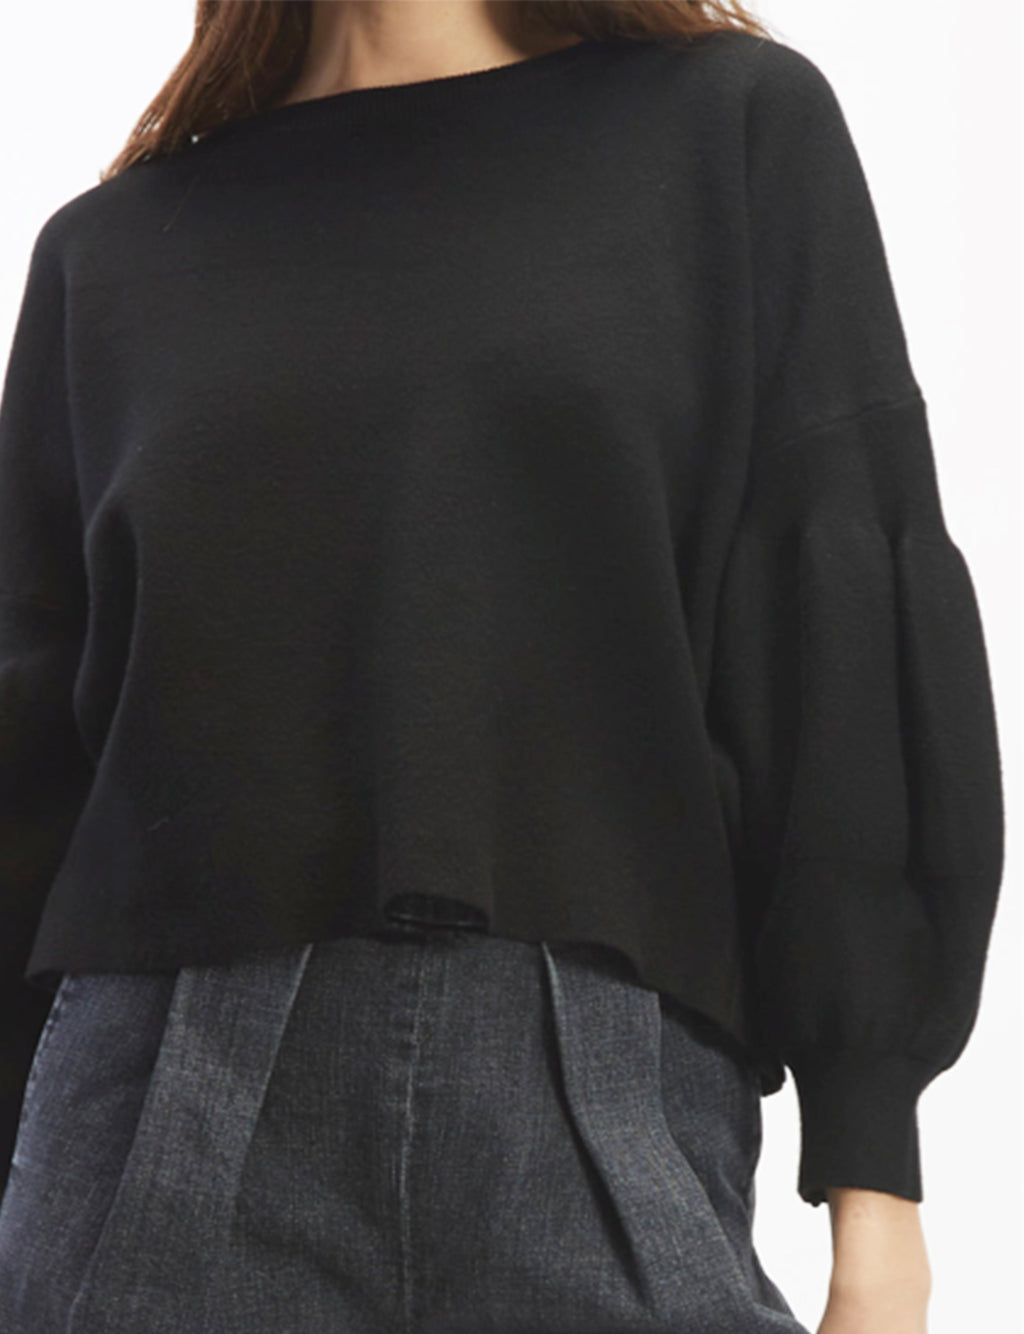 OAT Balloon Sleeve Sweater in Black